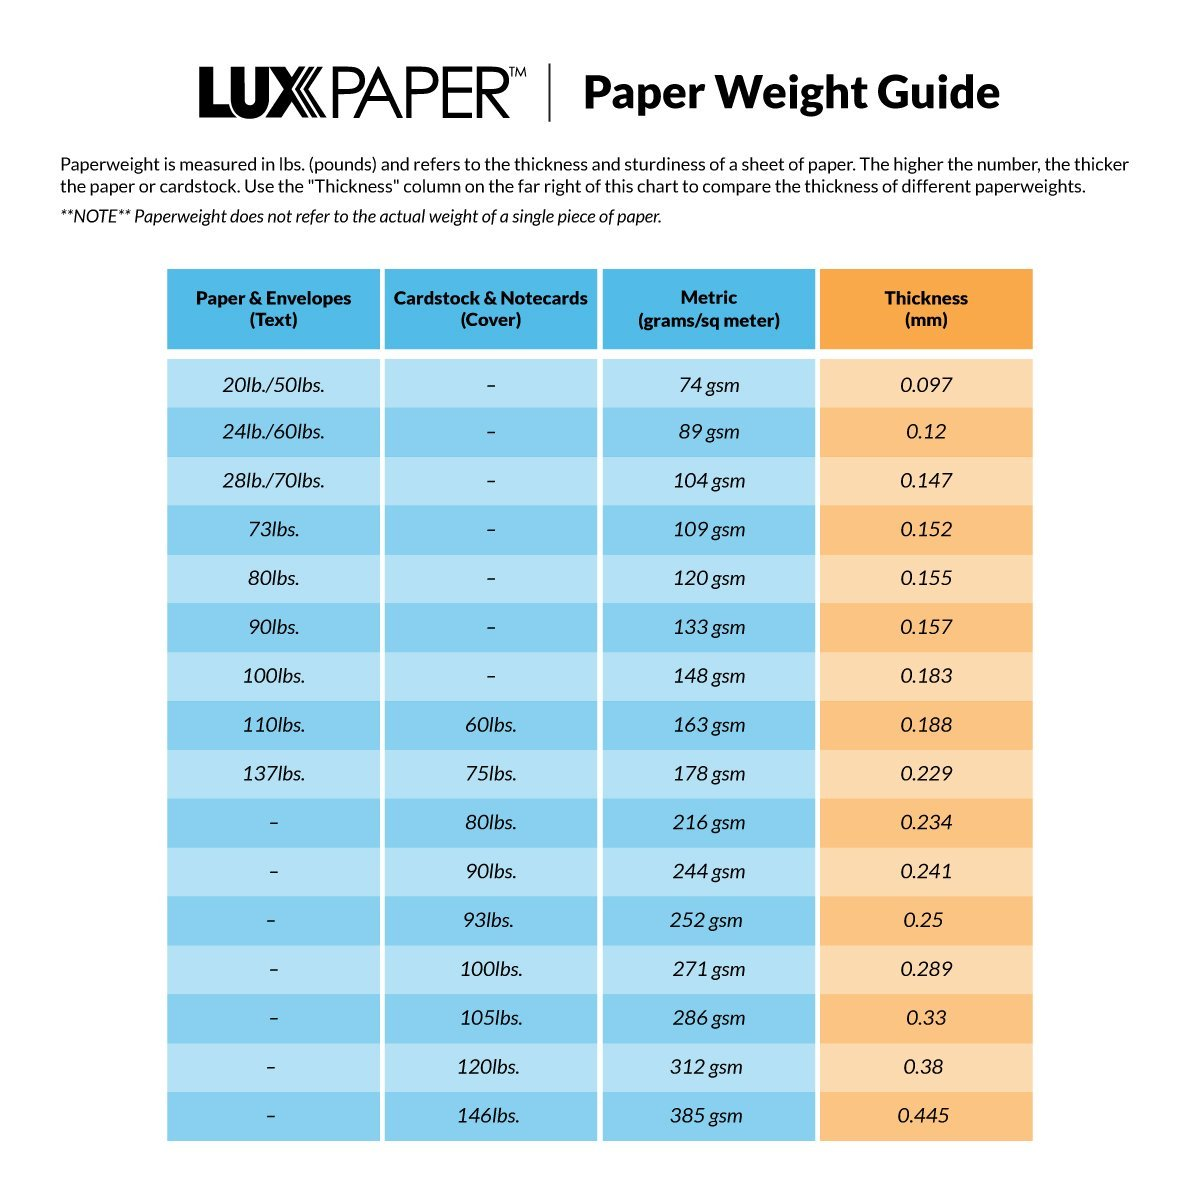 8 1/2 x 11 Paper - Silver Metallic (50 Qty.) | Perfect for Printing, Copying, Crafting, various Business needs and so much more! | 80lb Paper | 81211-P-78-50